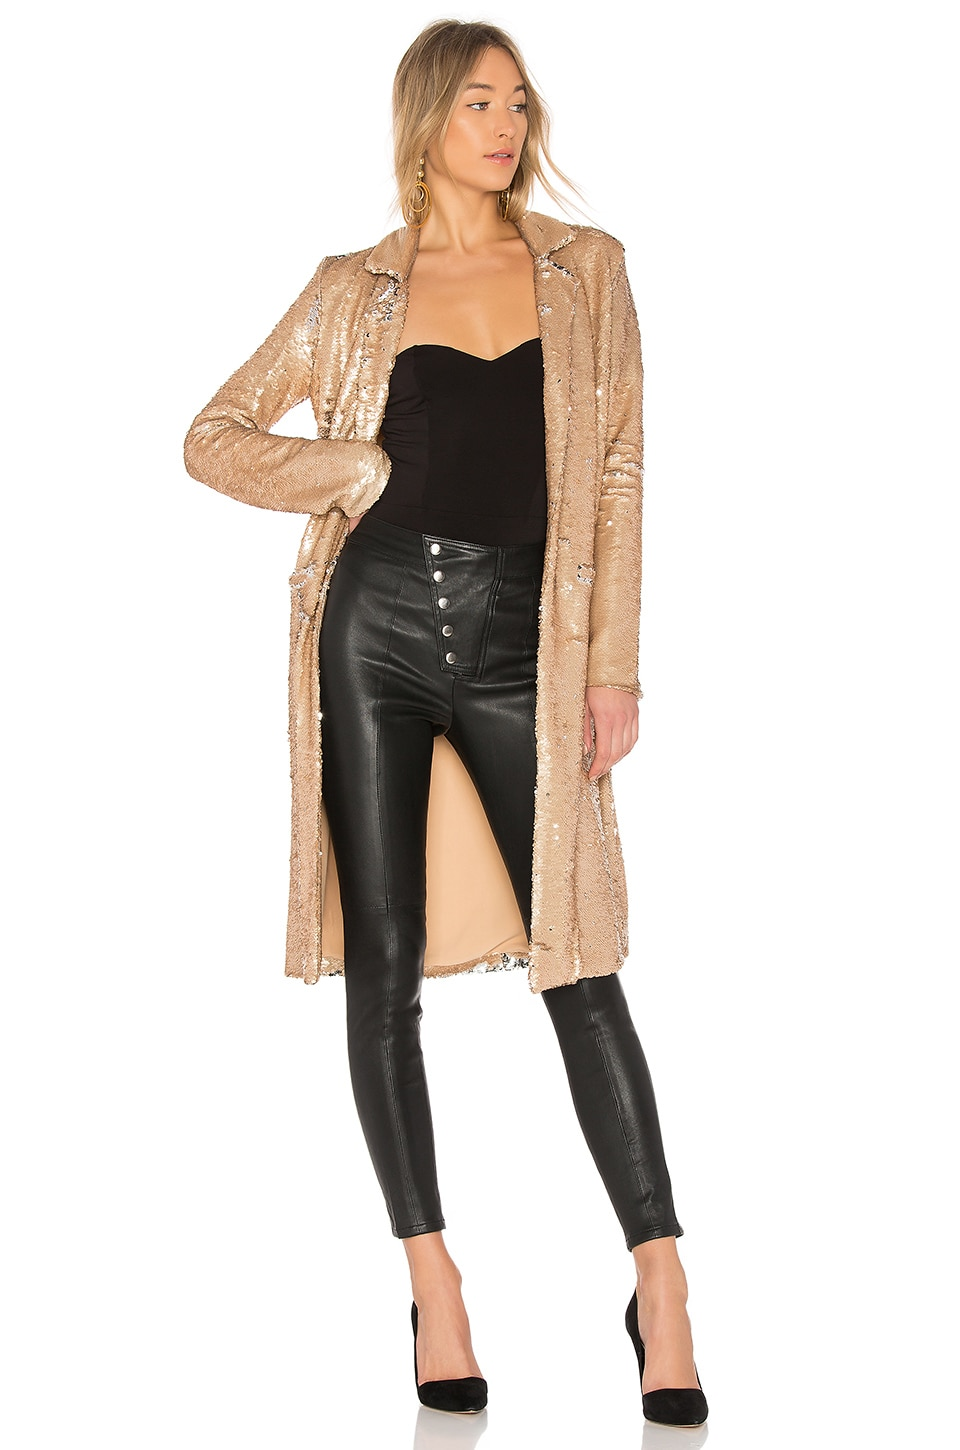 Angeli Sequin Duster by NBD